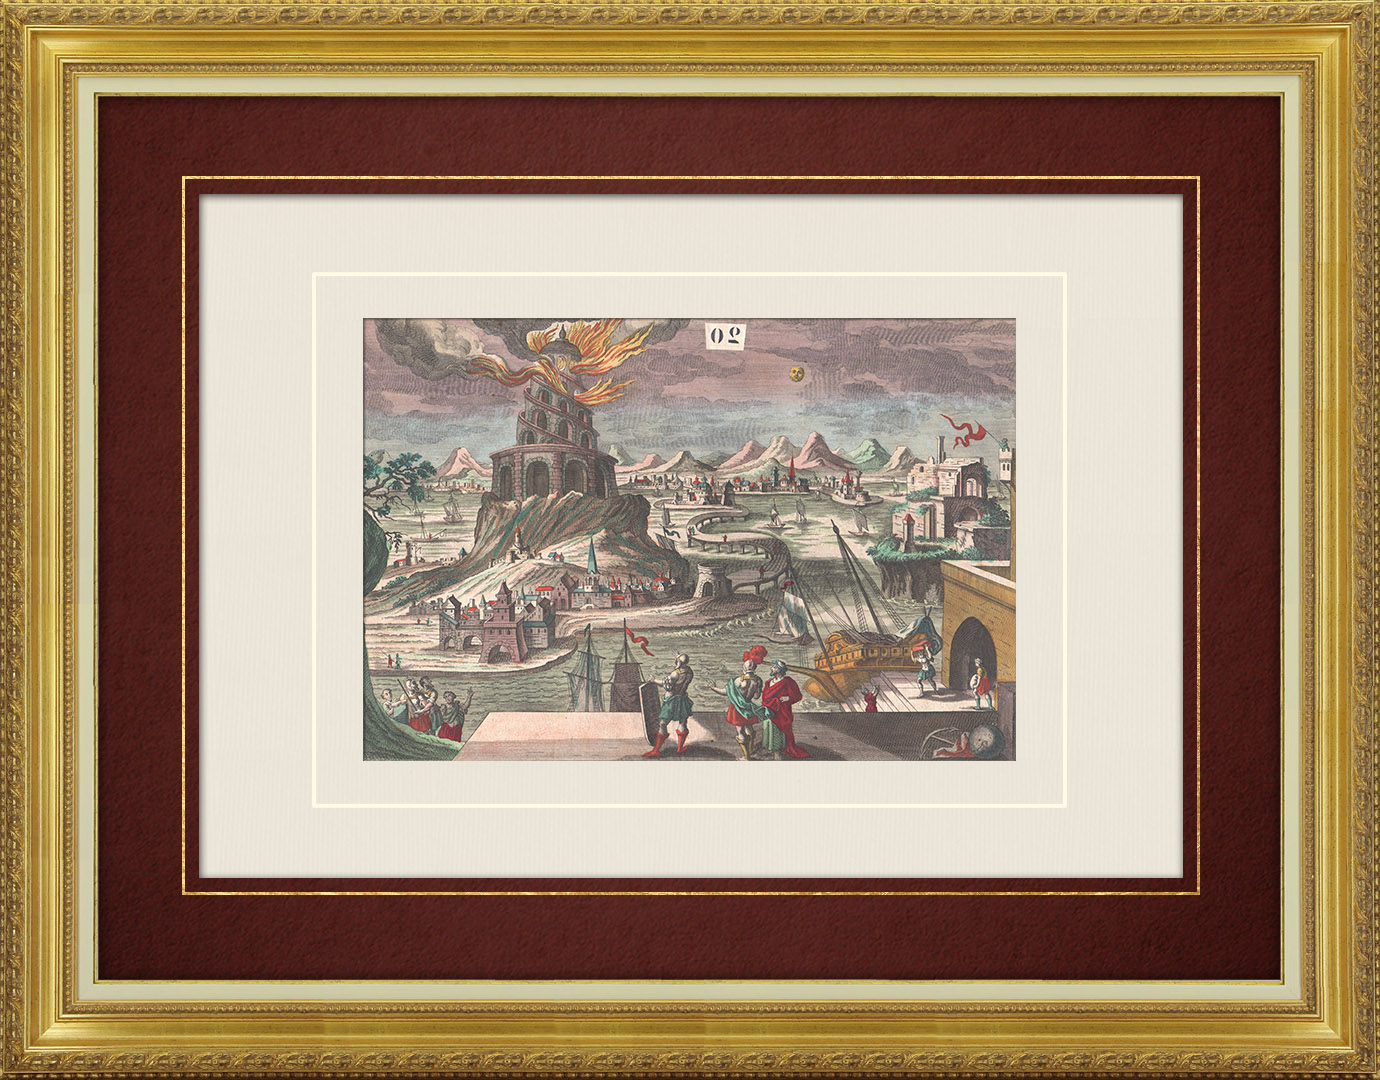 18th Century optical view in original watercolors of Lighthouse of Alexandria (Egypt)